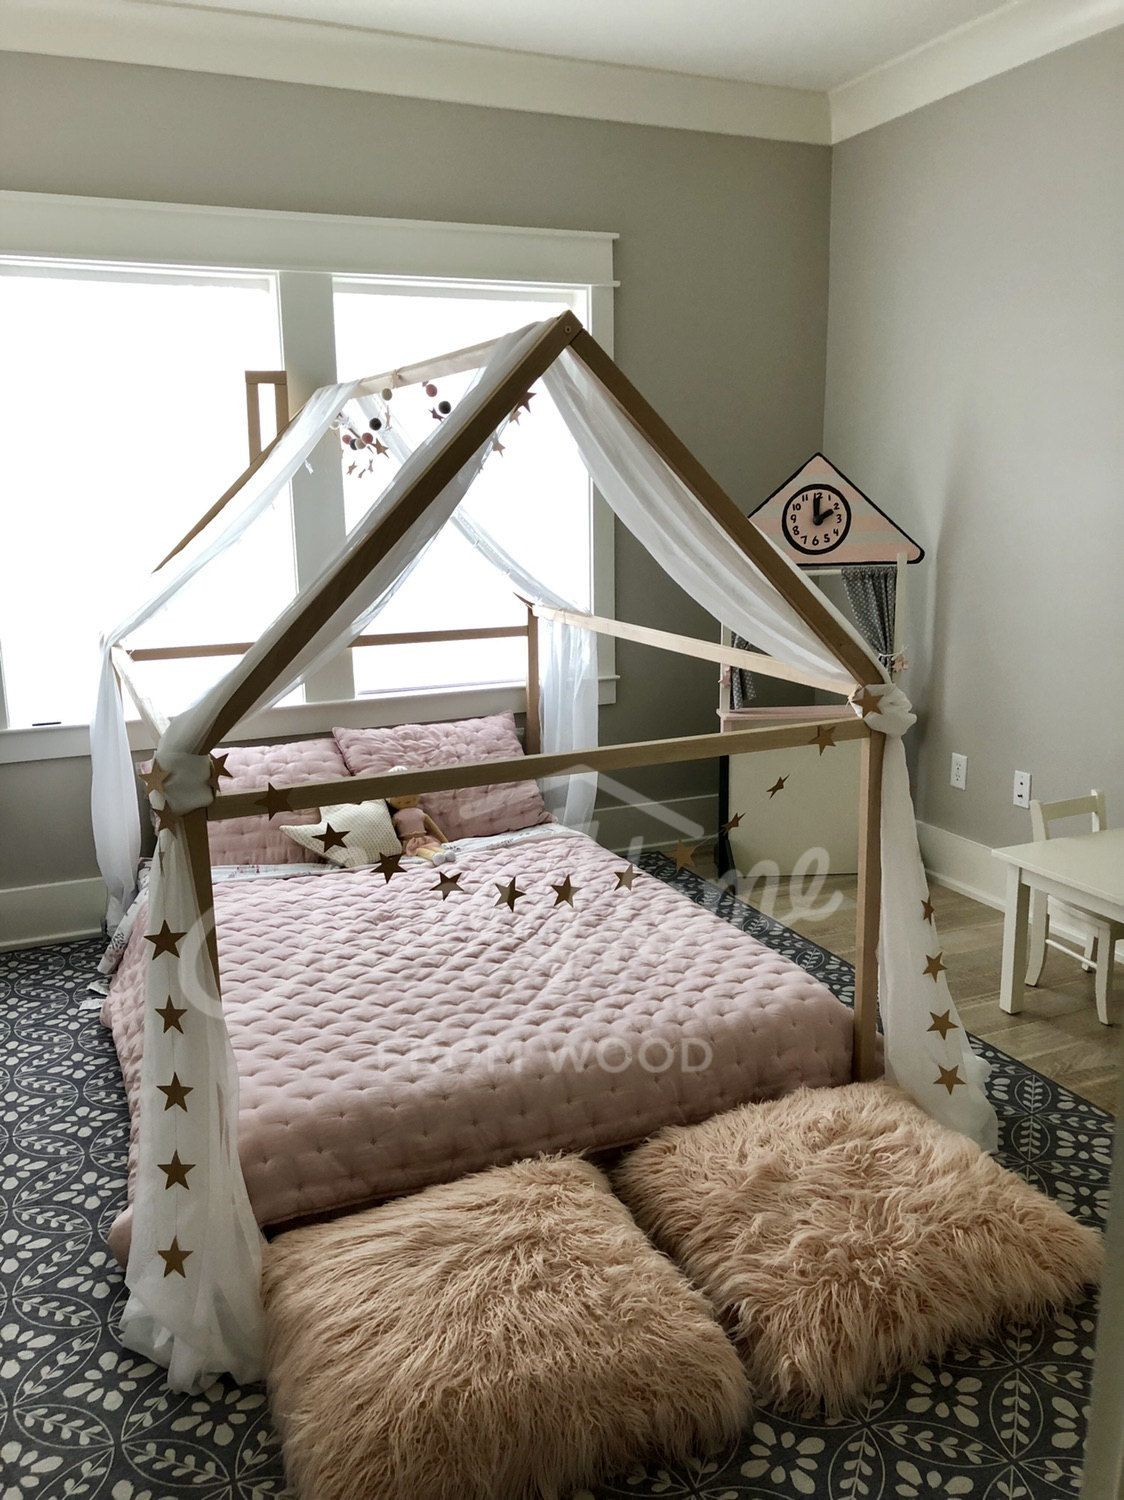 Montessori Toddler Beds Frame Bed House Bed House Wood House Kids Teepee Baby Bed Nursery Bed Platform Bed Children